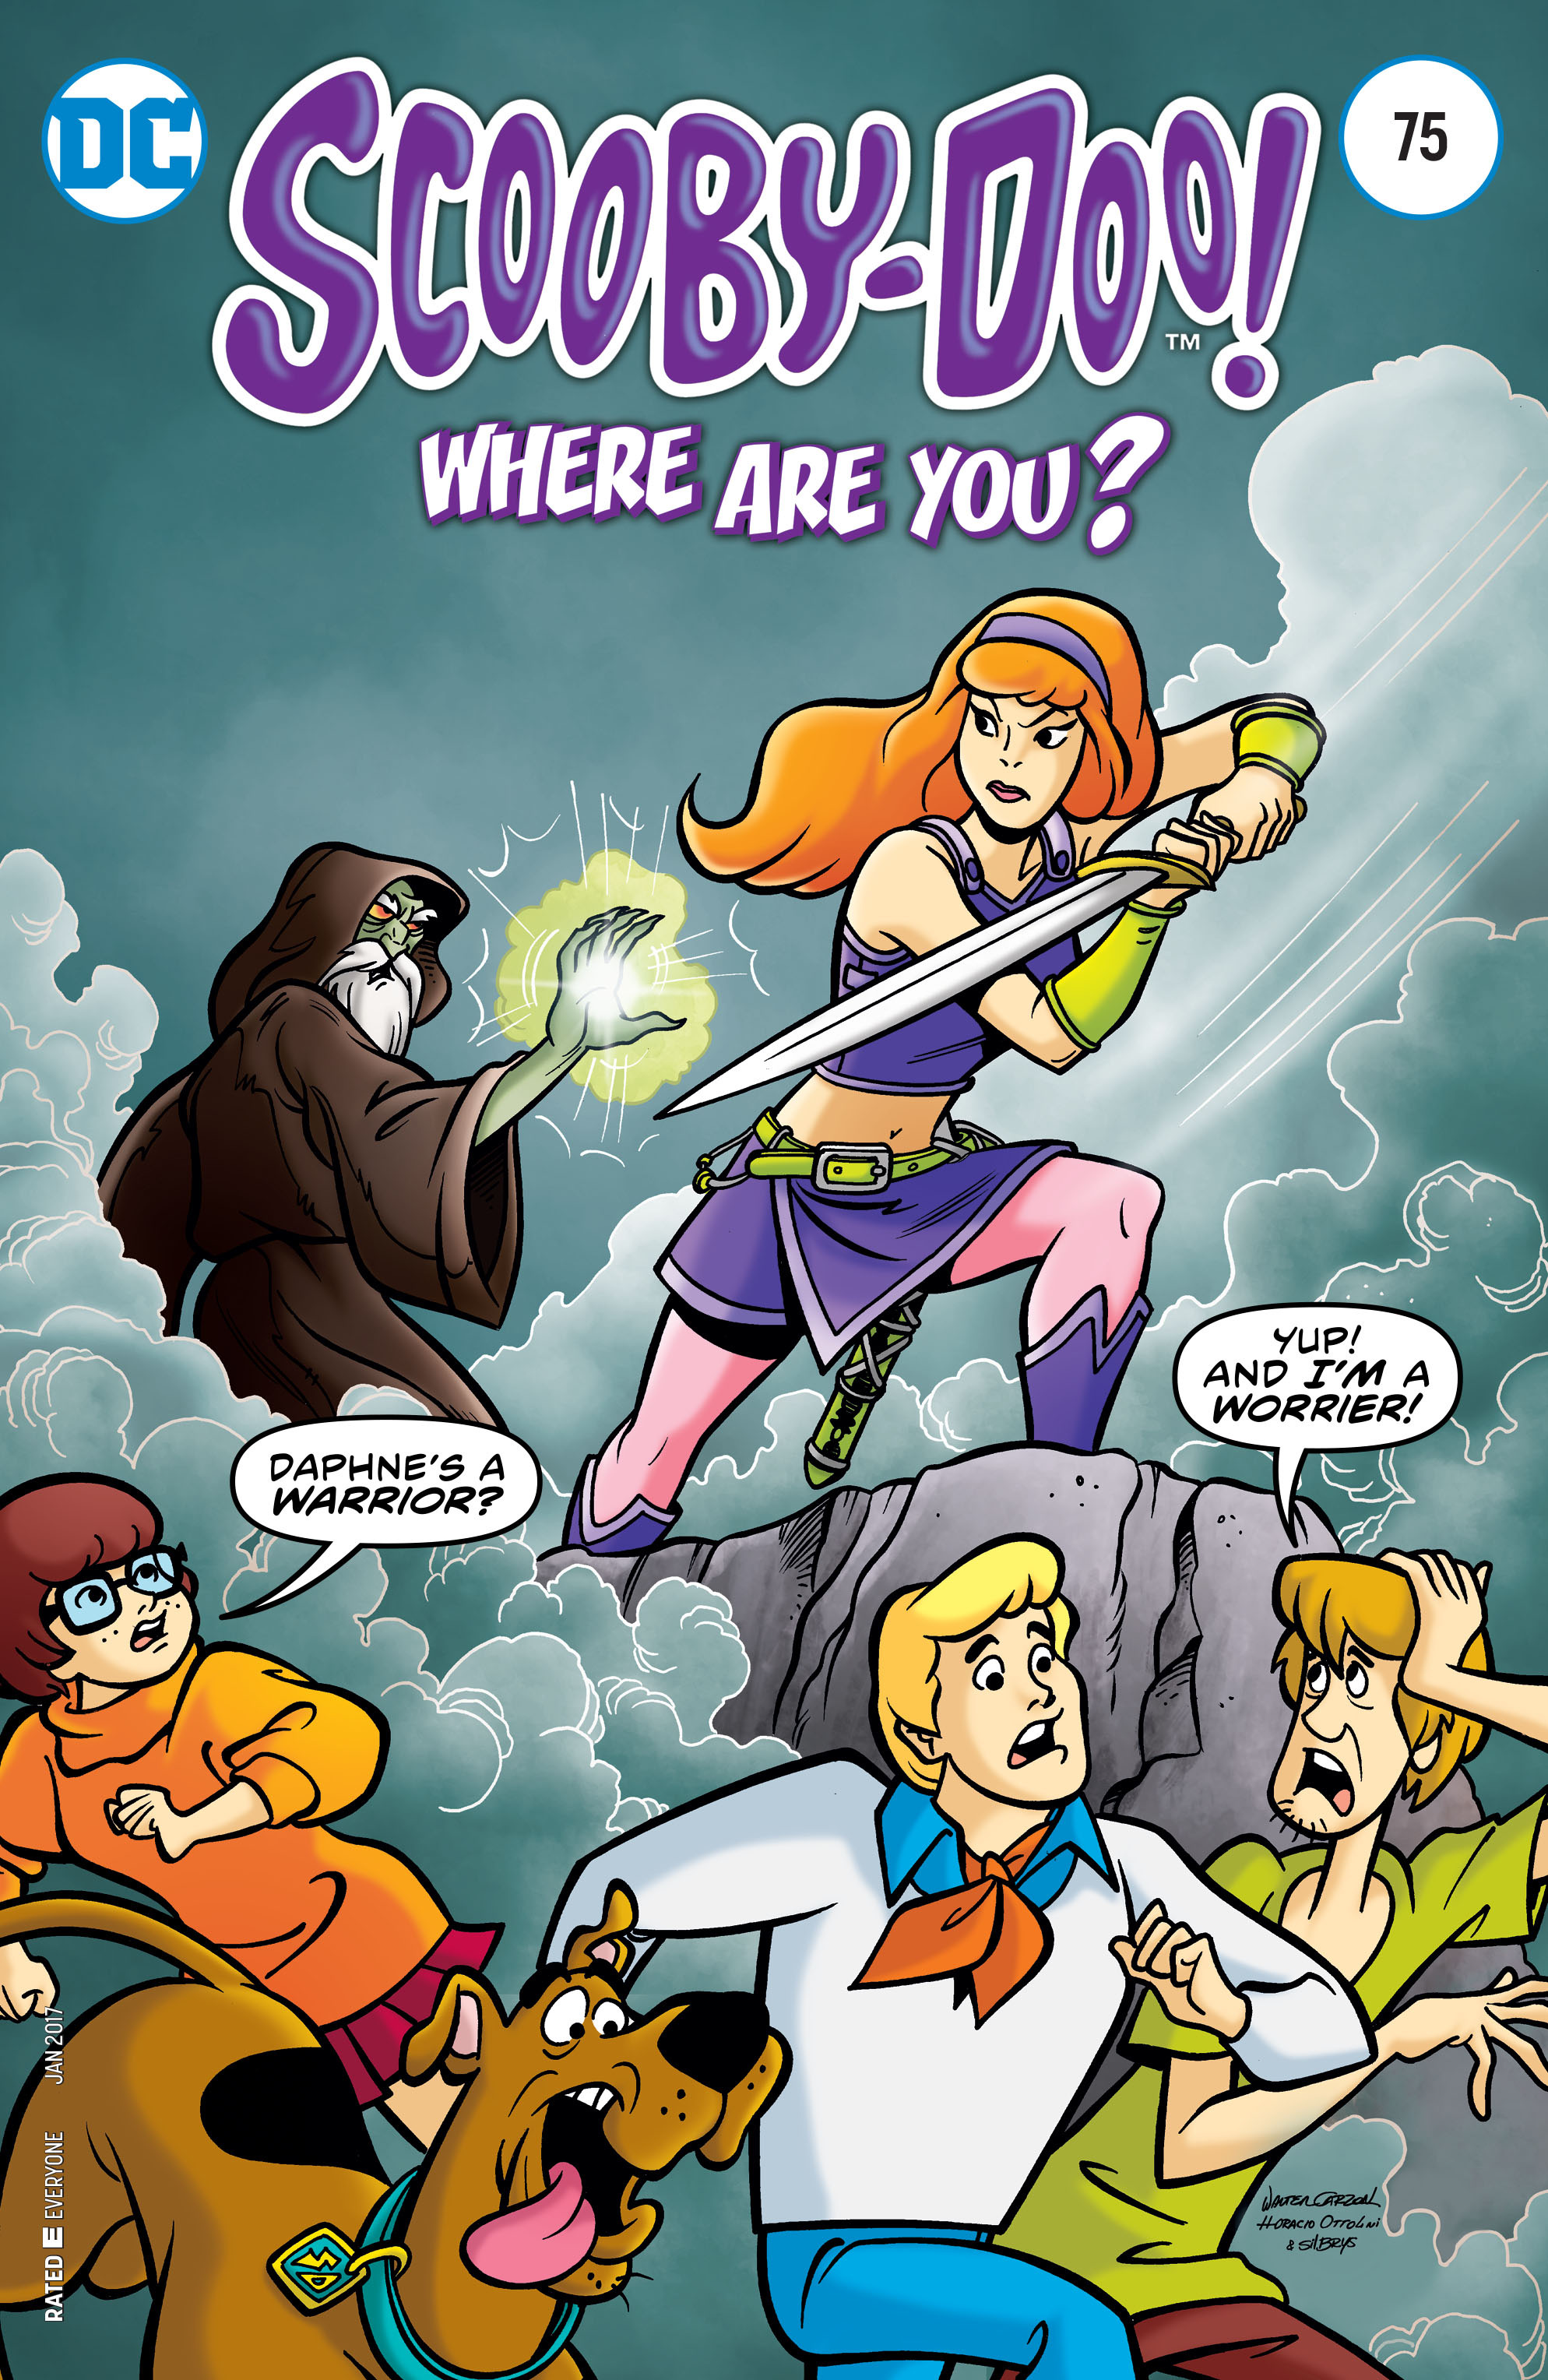 Read online Scooby-Doo: Where Are You? comic -  Issue #75 - 1